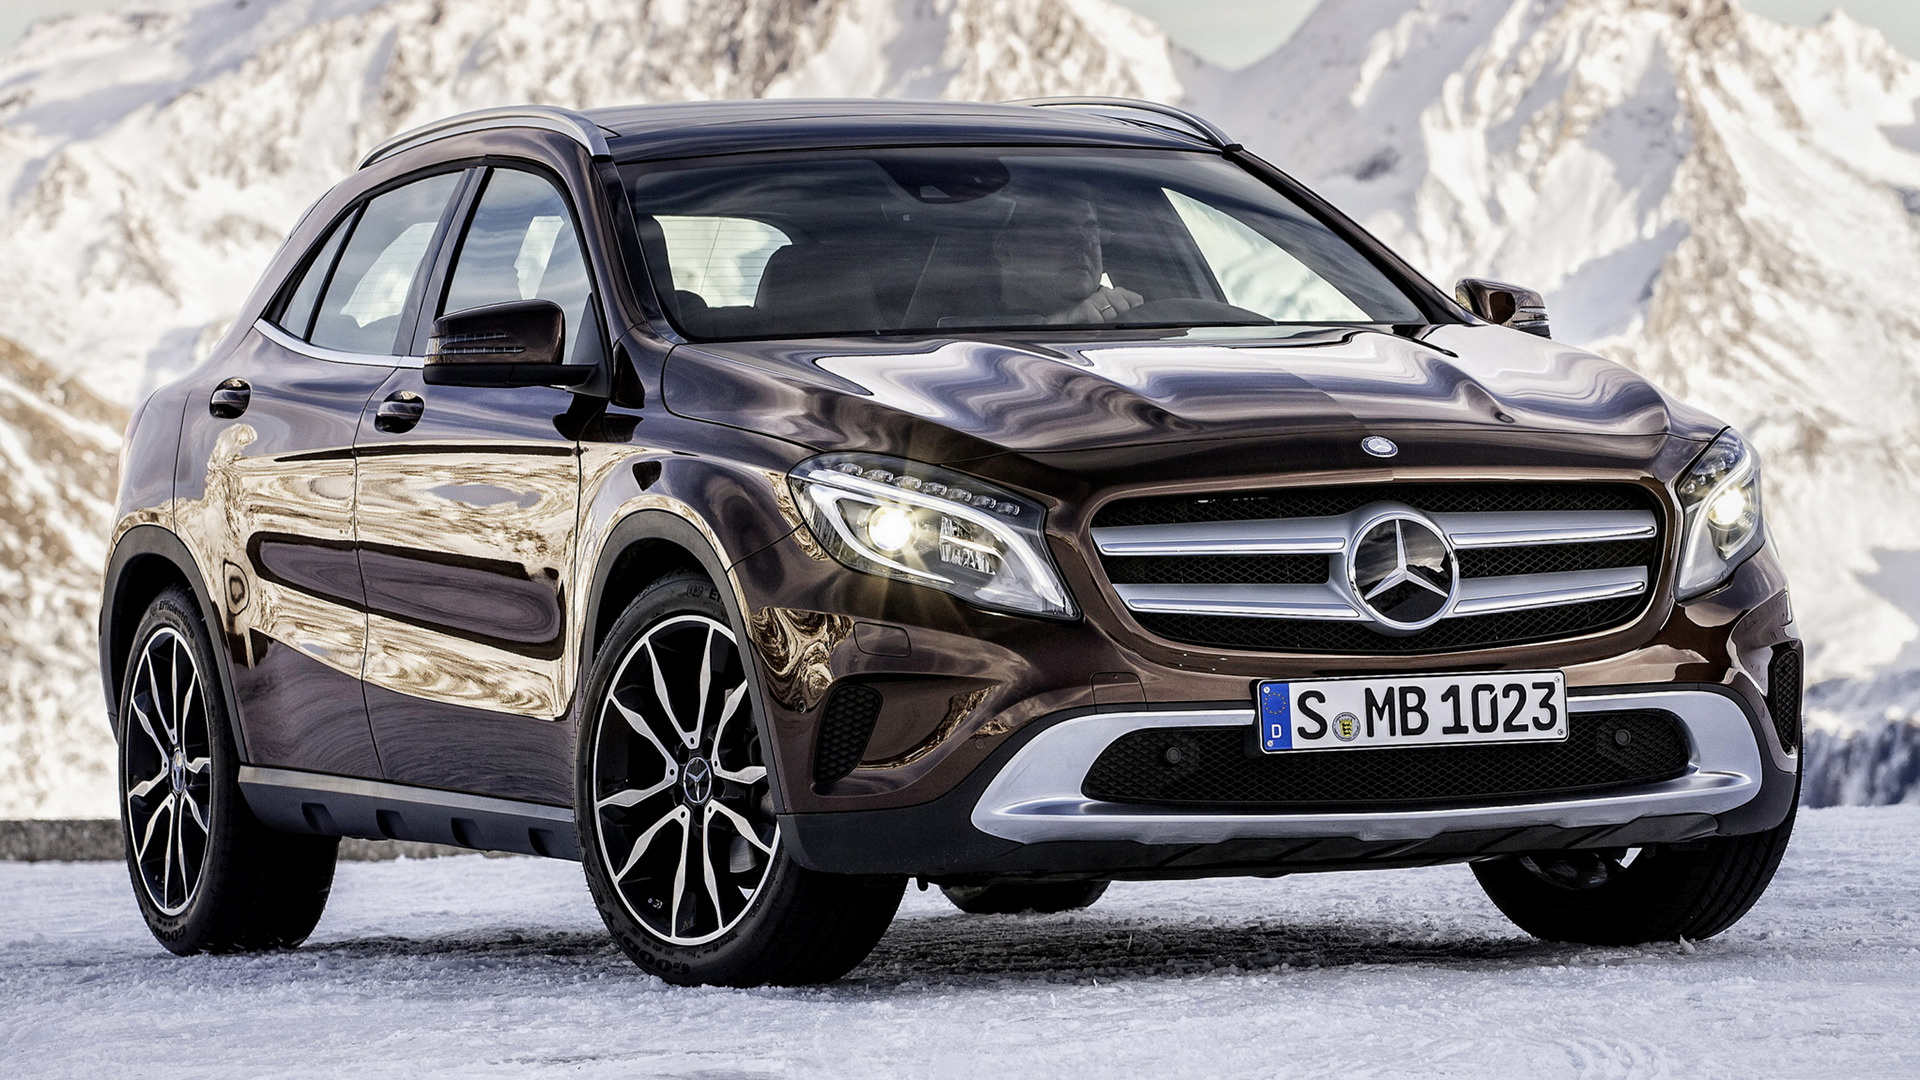 Mercedes benz gla class 2014 wallpapers and hd images for 2014 mercedes benz gla class